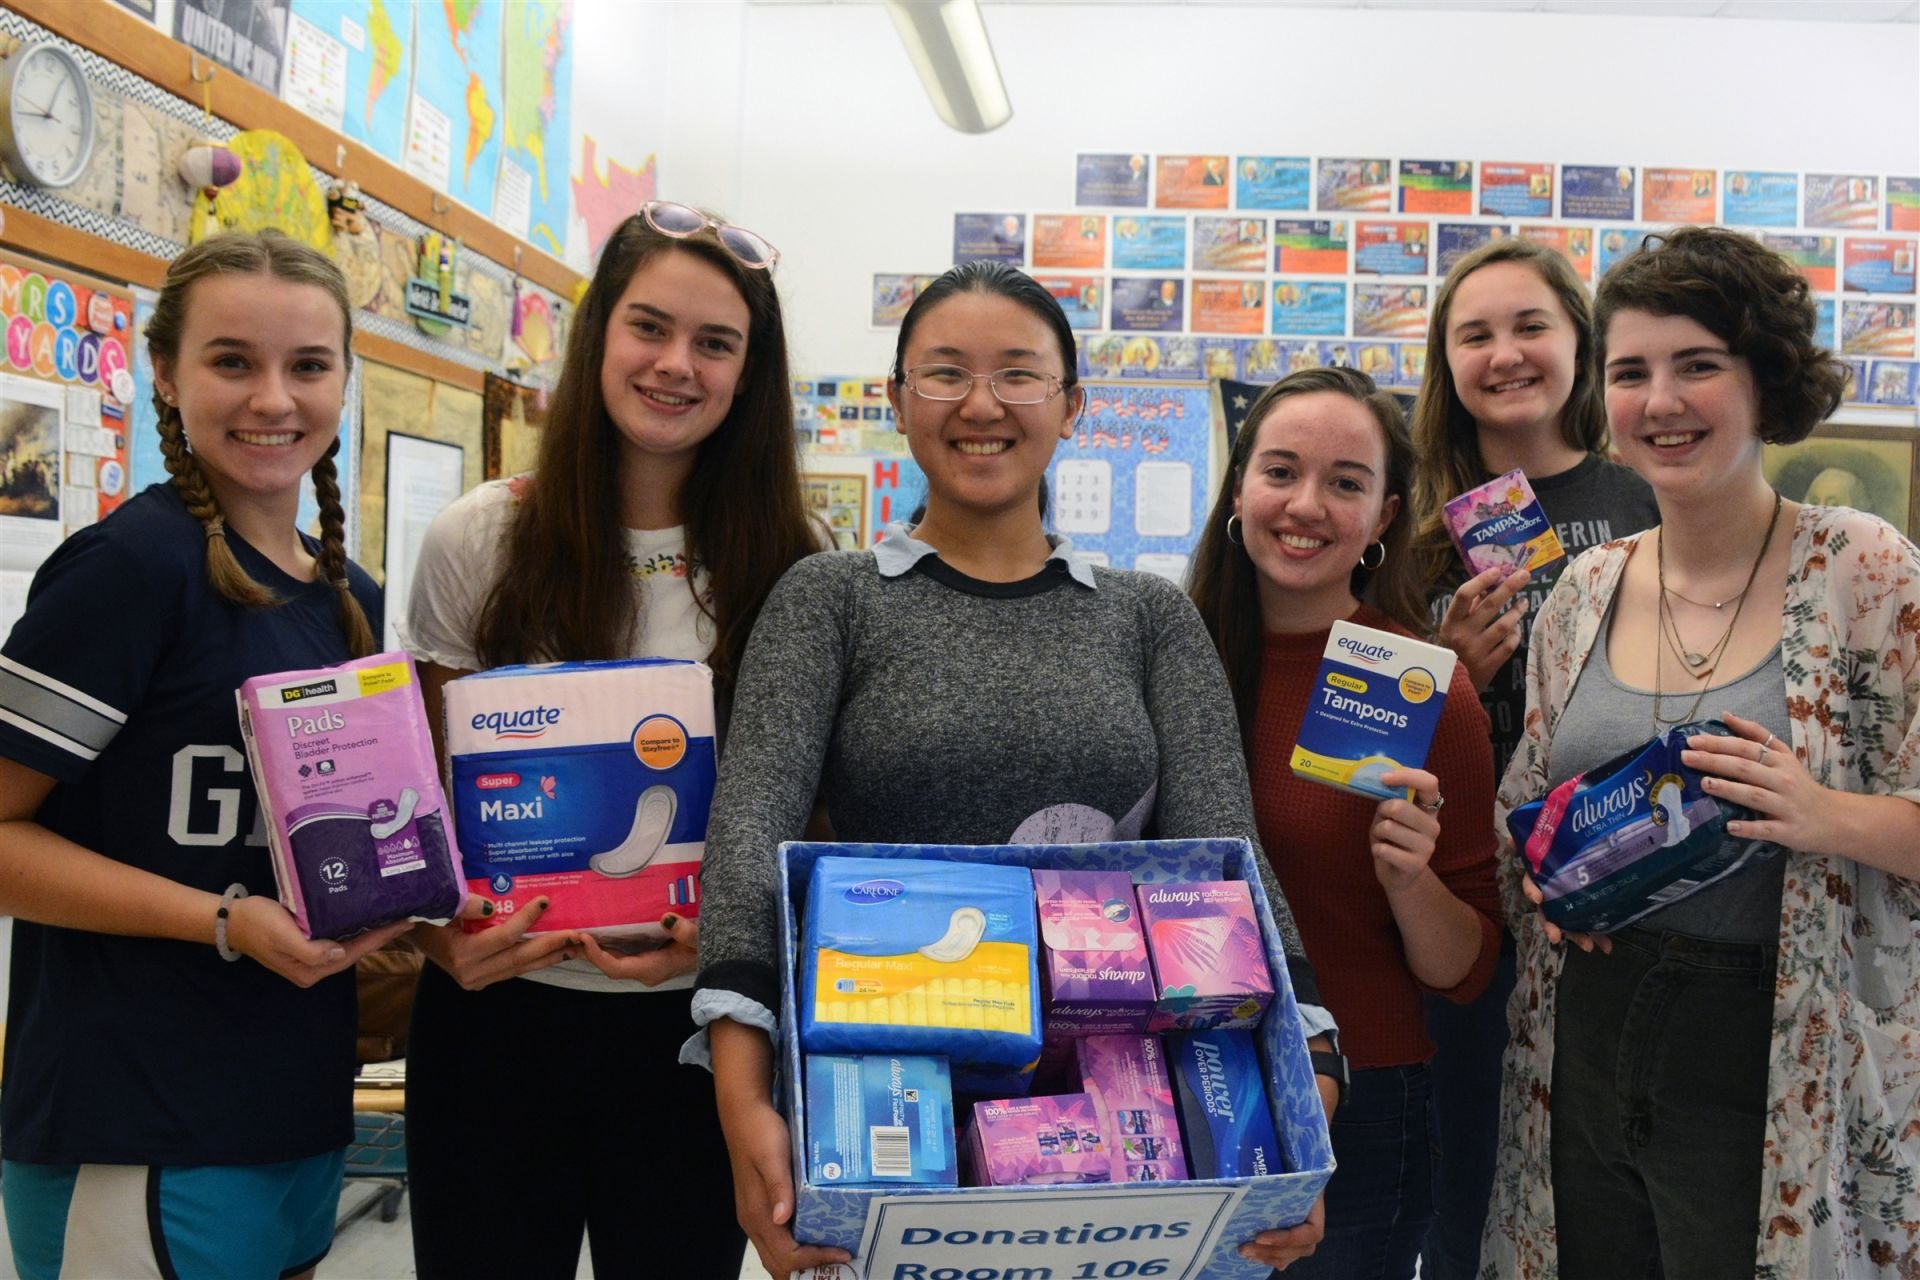 In honor of International Day of the Girl, Members of Bridge Club encouraged a school-wide drive to help women and girls who do not have access to basic feminine hygiene products.